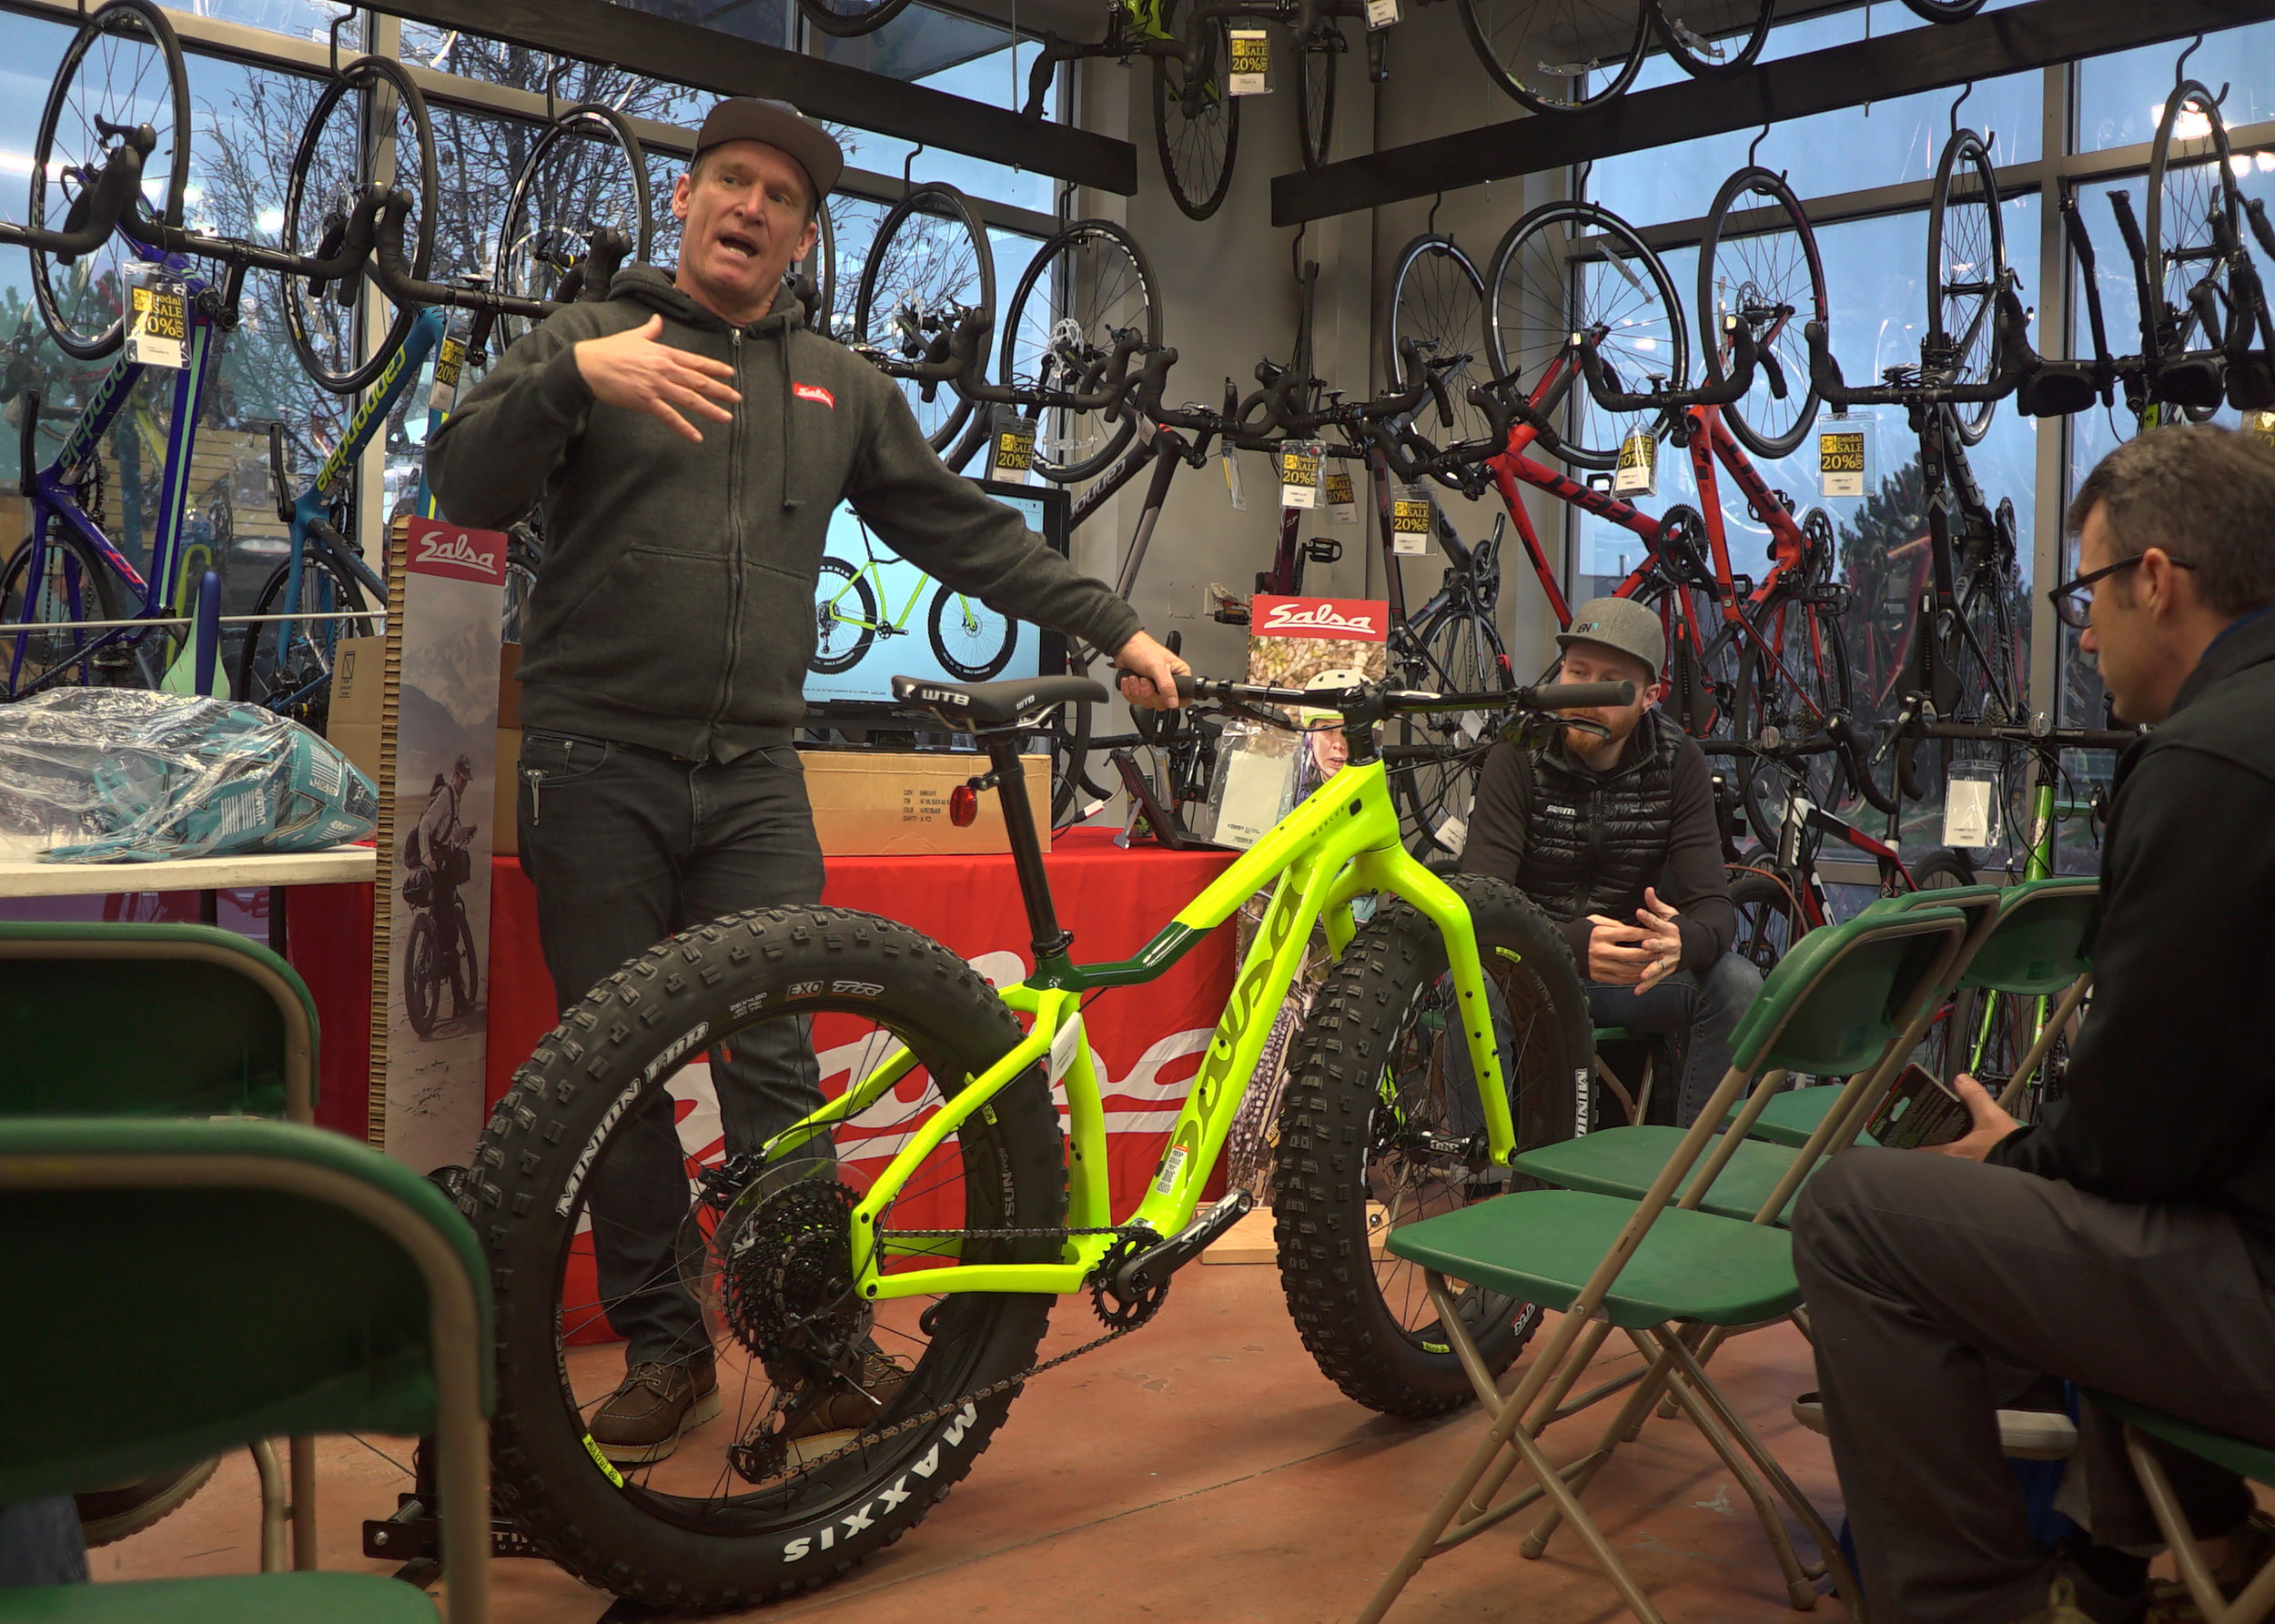 Neil, from Salsa Cycles, tells the crowd about the new features unique to the 4th generation of the Mukluk.